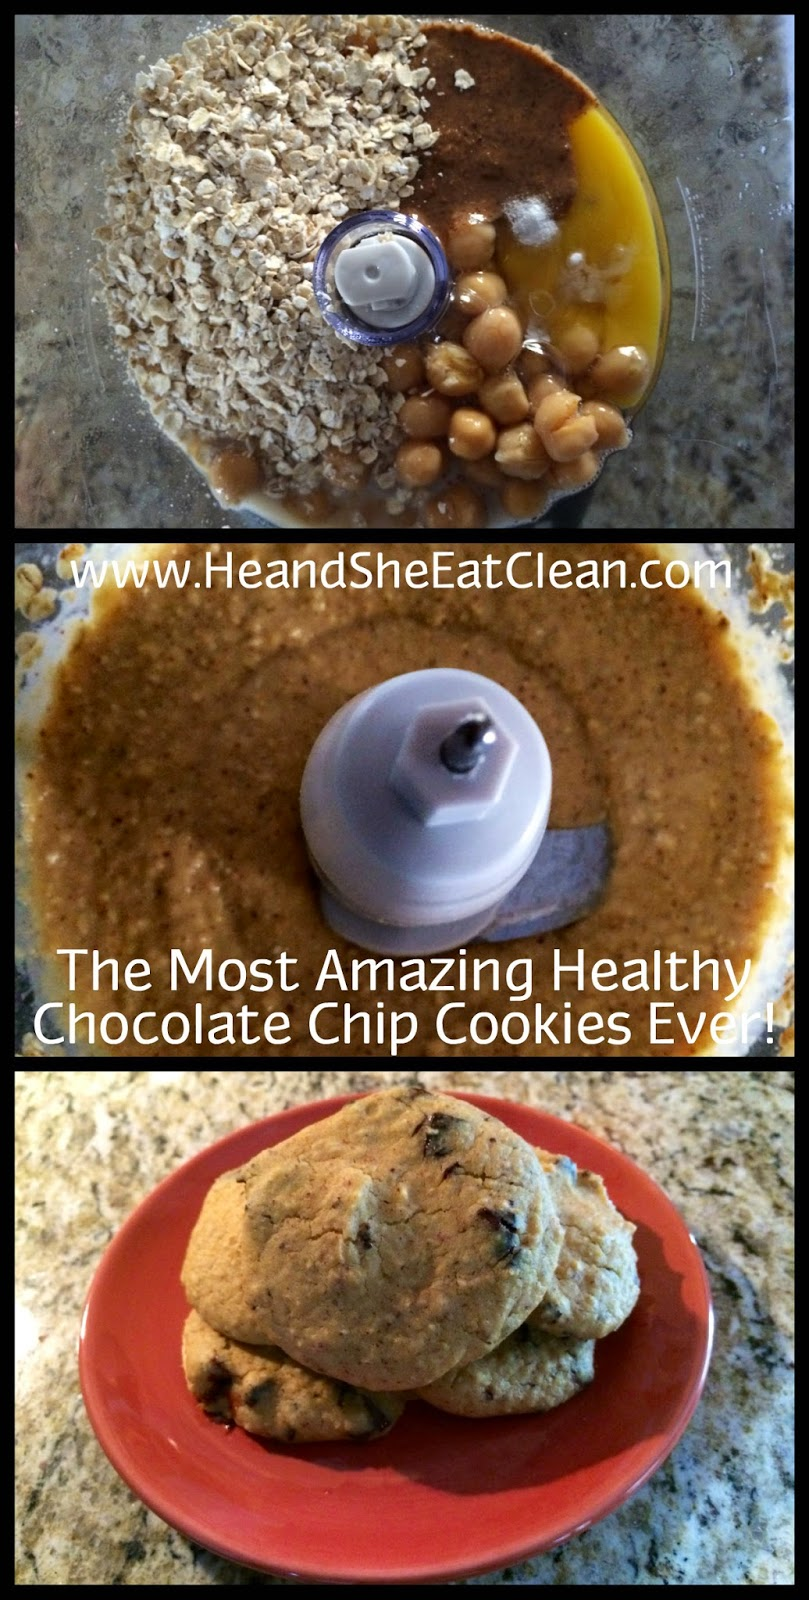 chocolate-chip-cookies-eat-clean-healthy-he-and-she-eat-clean-dessert-diet-treat.jpg